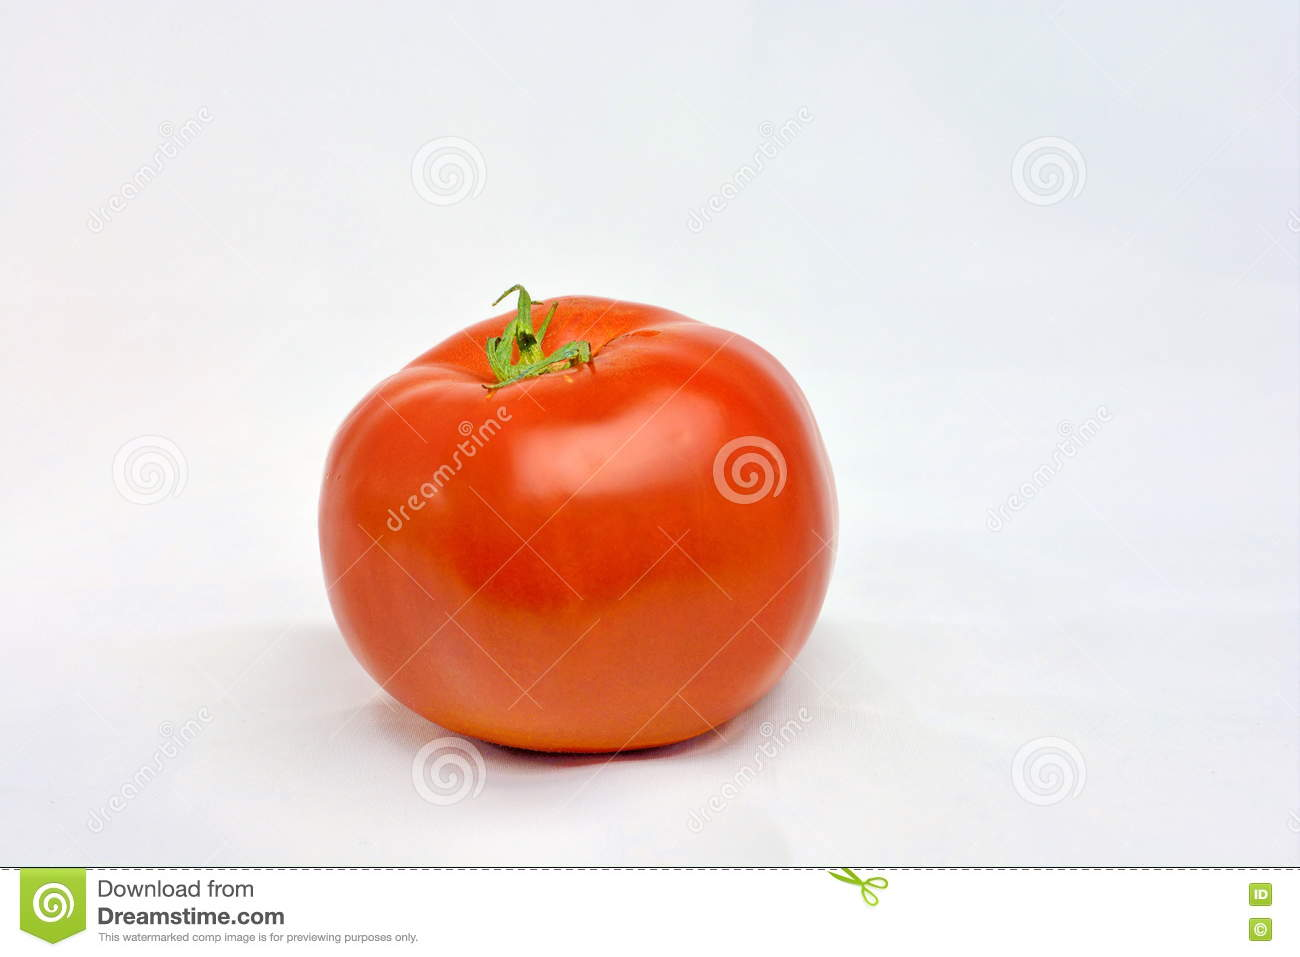 Download Beefsteak Tomato stock photo. Image of colorful, white - 72865040